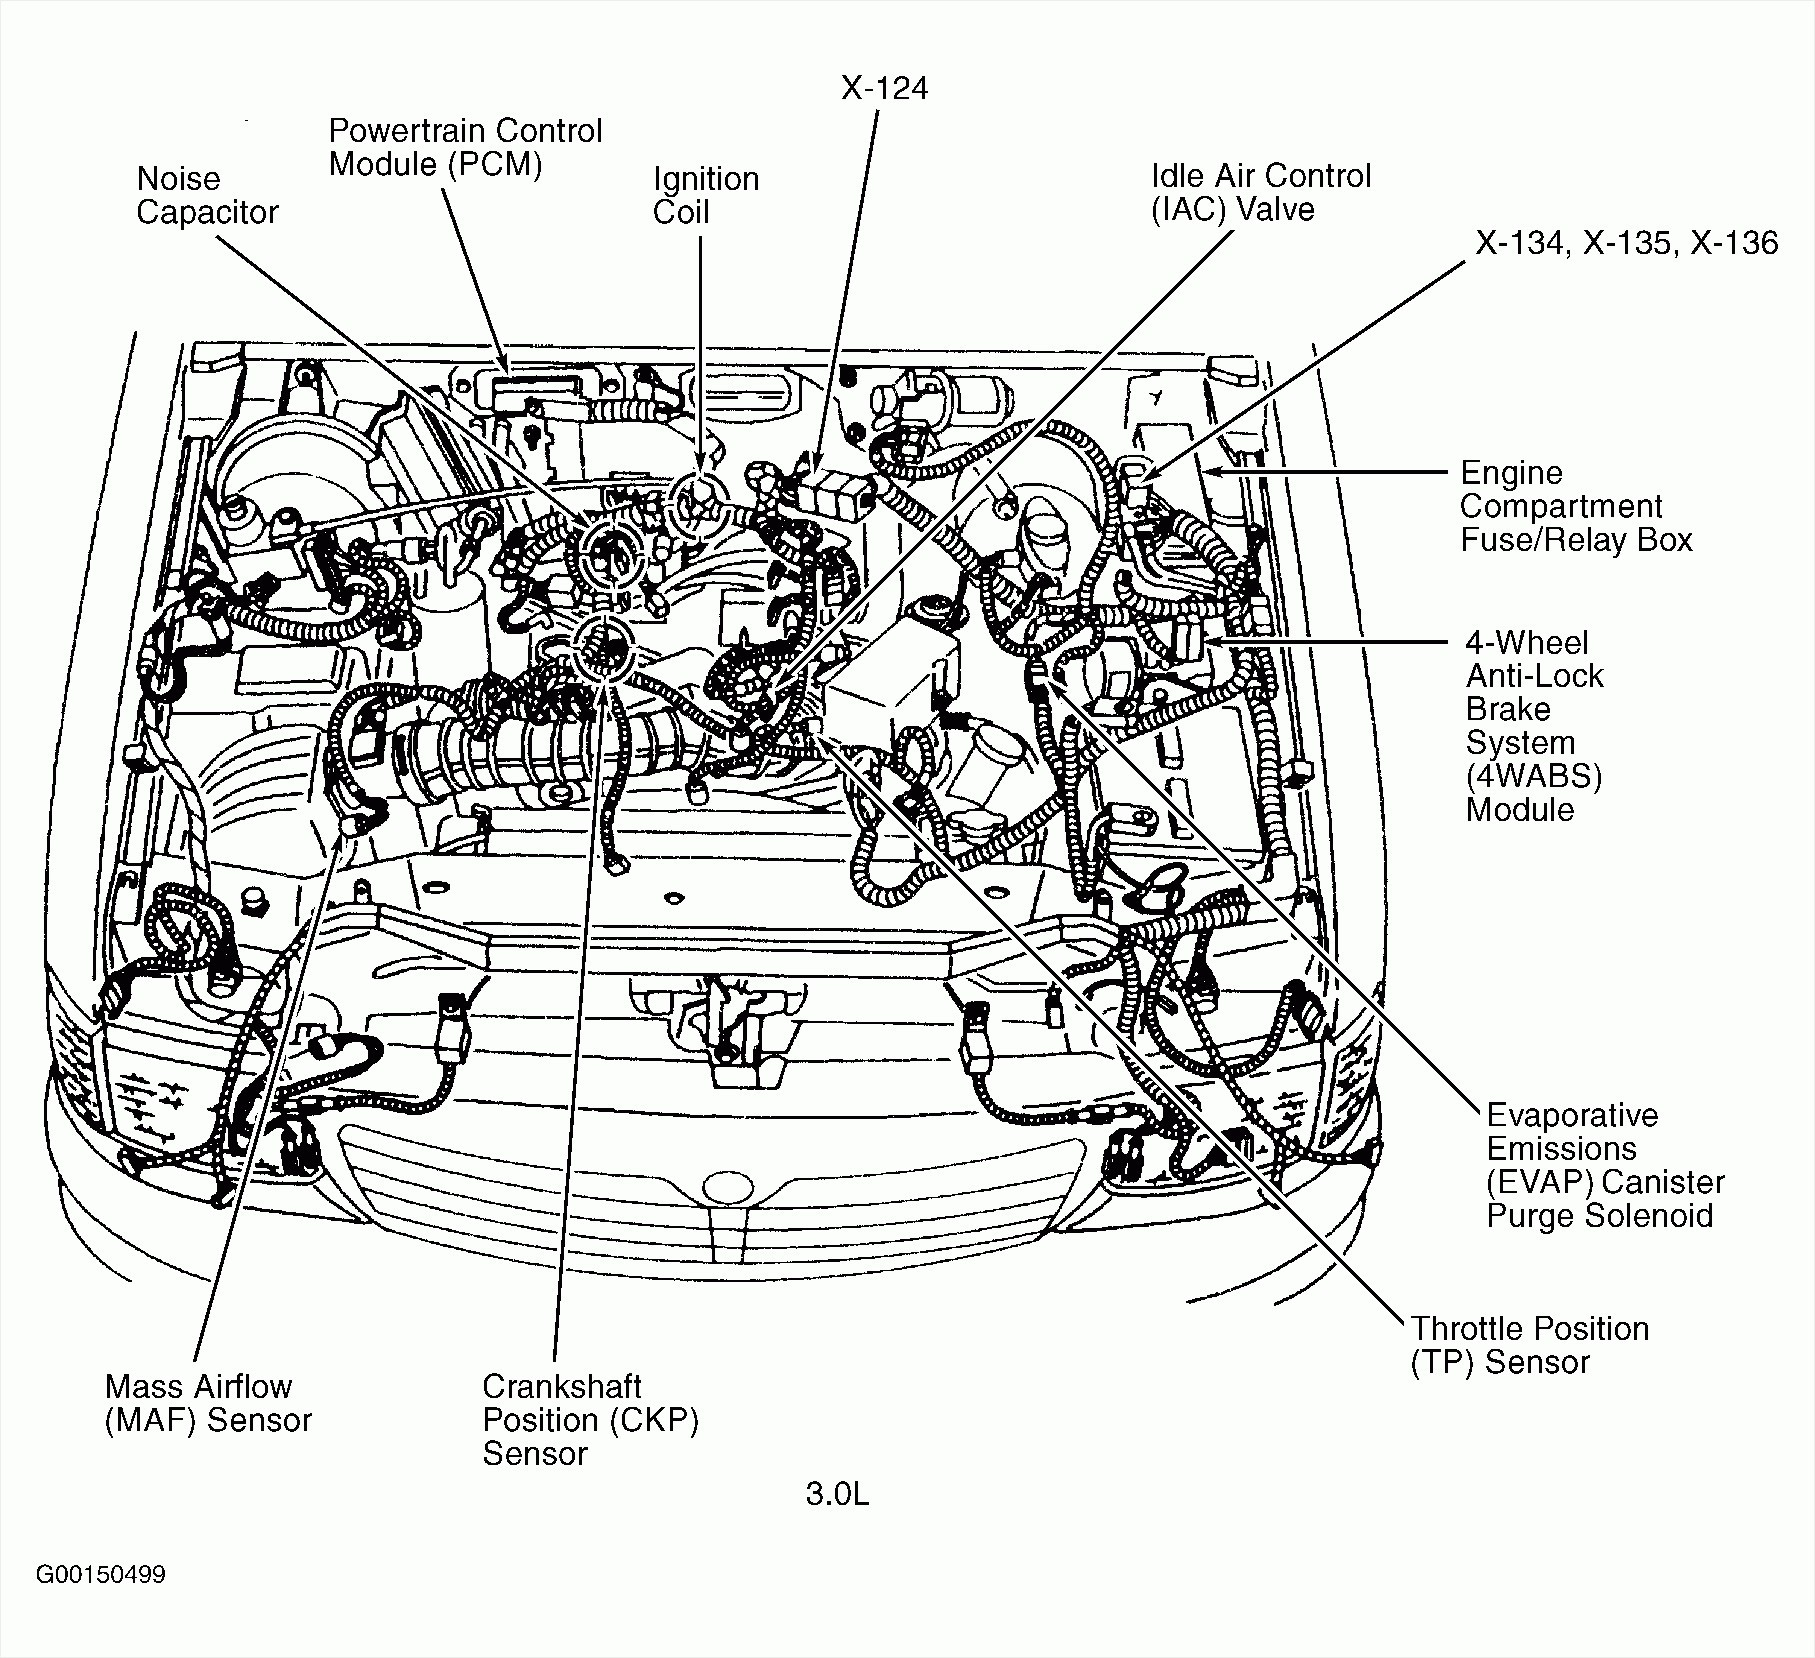 Kiasephiaalternatorbeltdiagram Download Image 2000 Kia Sephia Rear